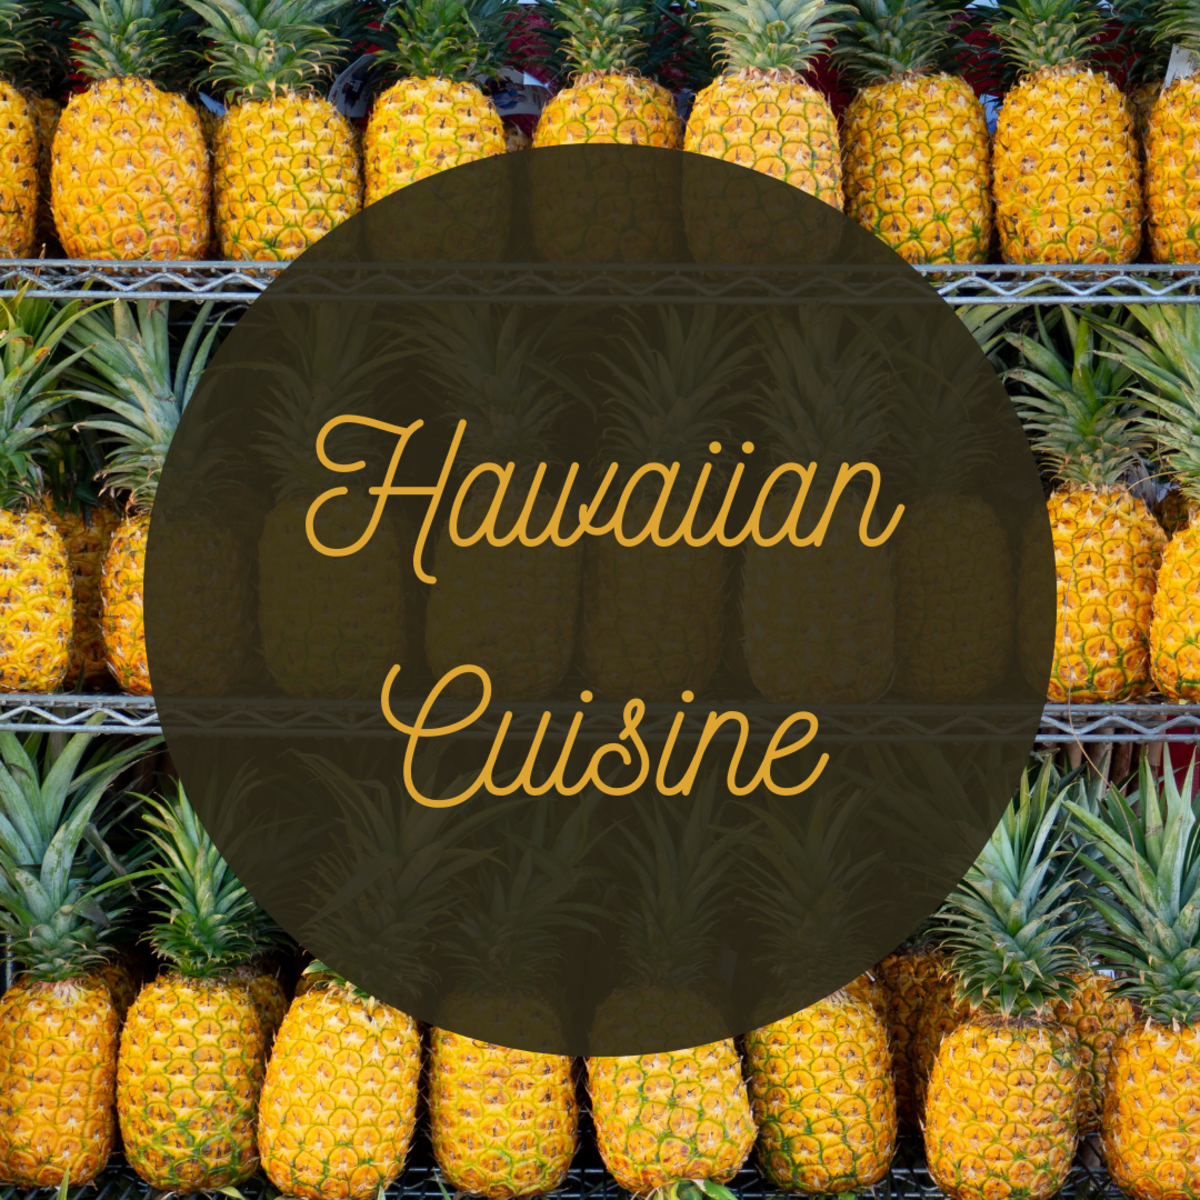 From the traditional lu'au to the modern plate lunch, Hawaiian cuisine has changed dramatically over time.